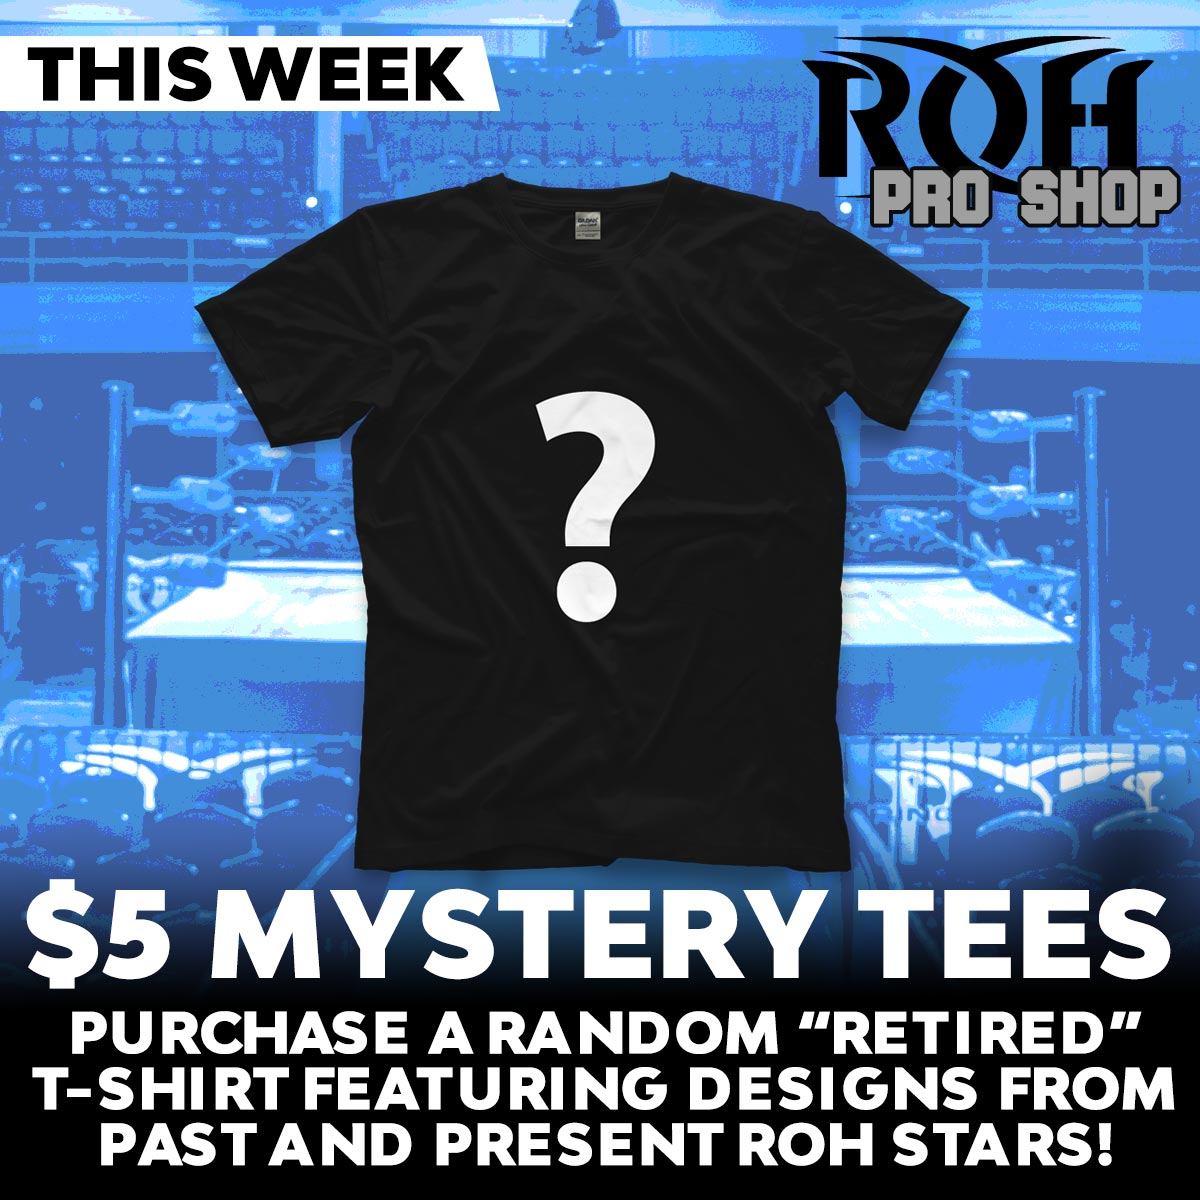 """This week the #ROHProShop is offering mystery tees for just $5! You get a random """"retired"""" t-shirt featuring designs for past and present Ring of Honor stars. http://ow.ly/obZY30nKd1B"""